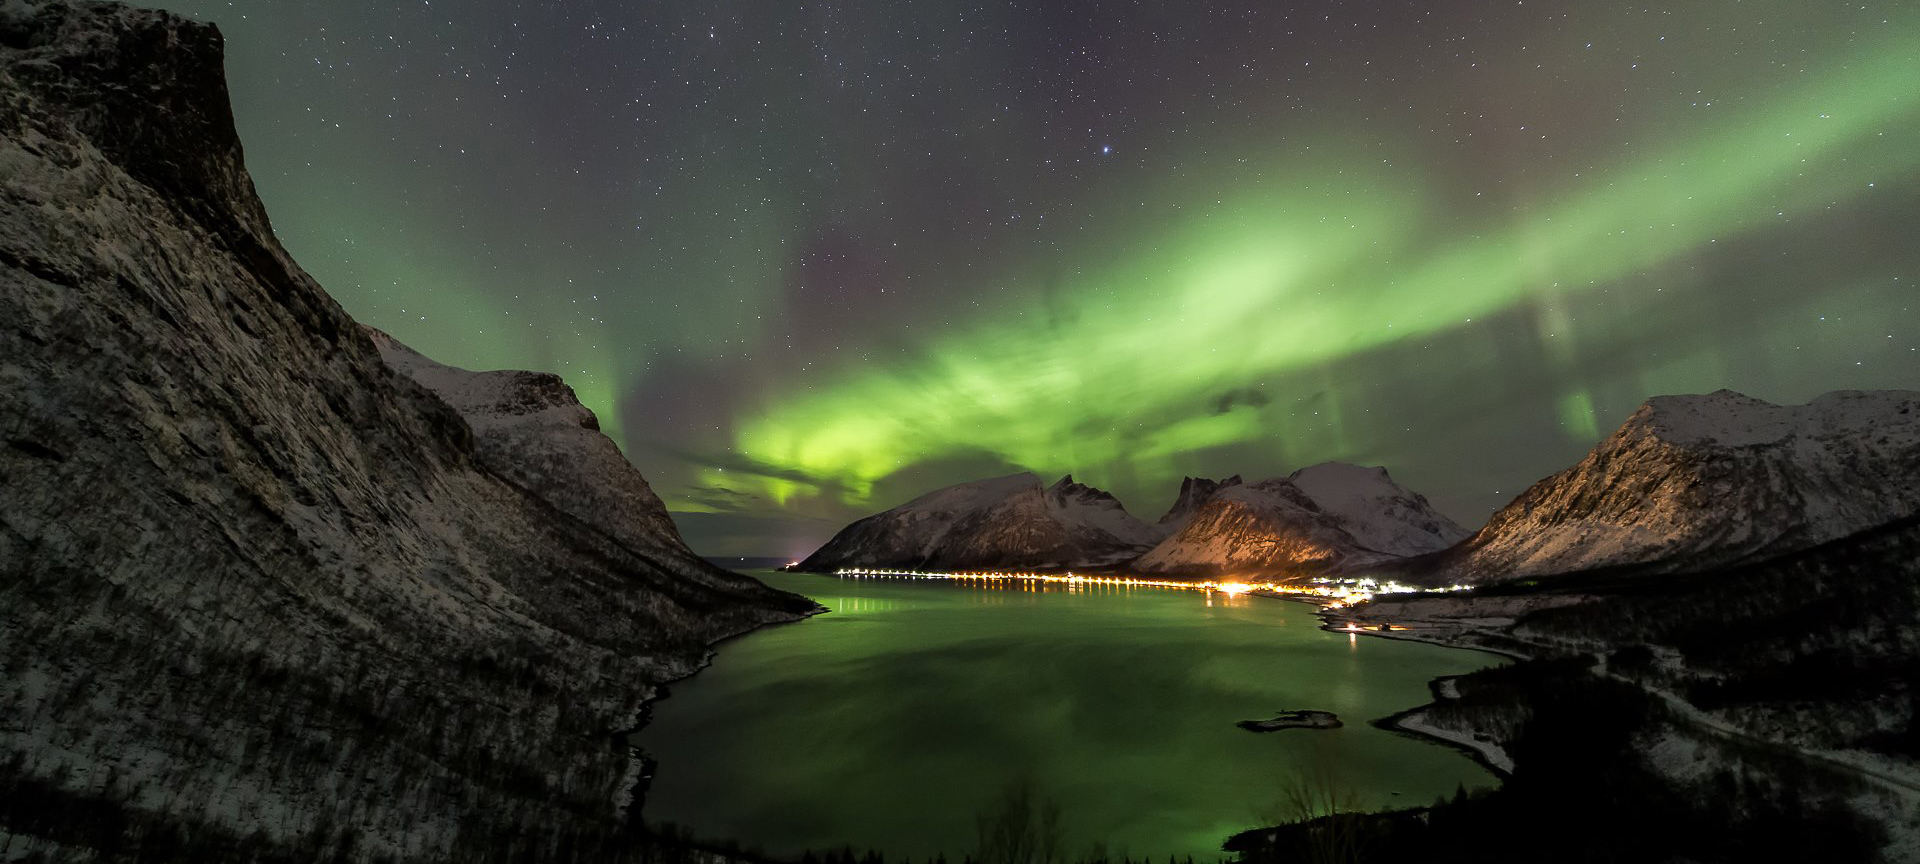 Aurora-North-Norway-002